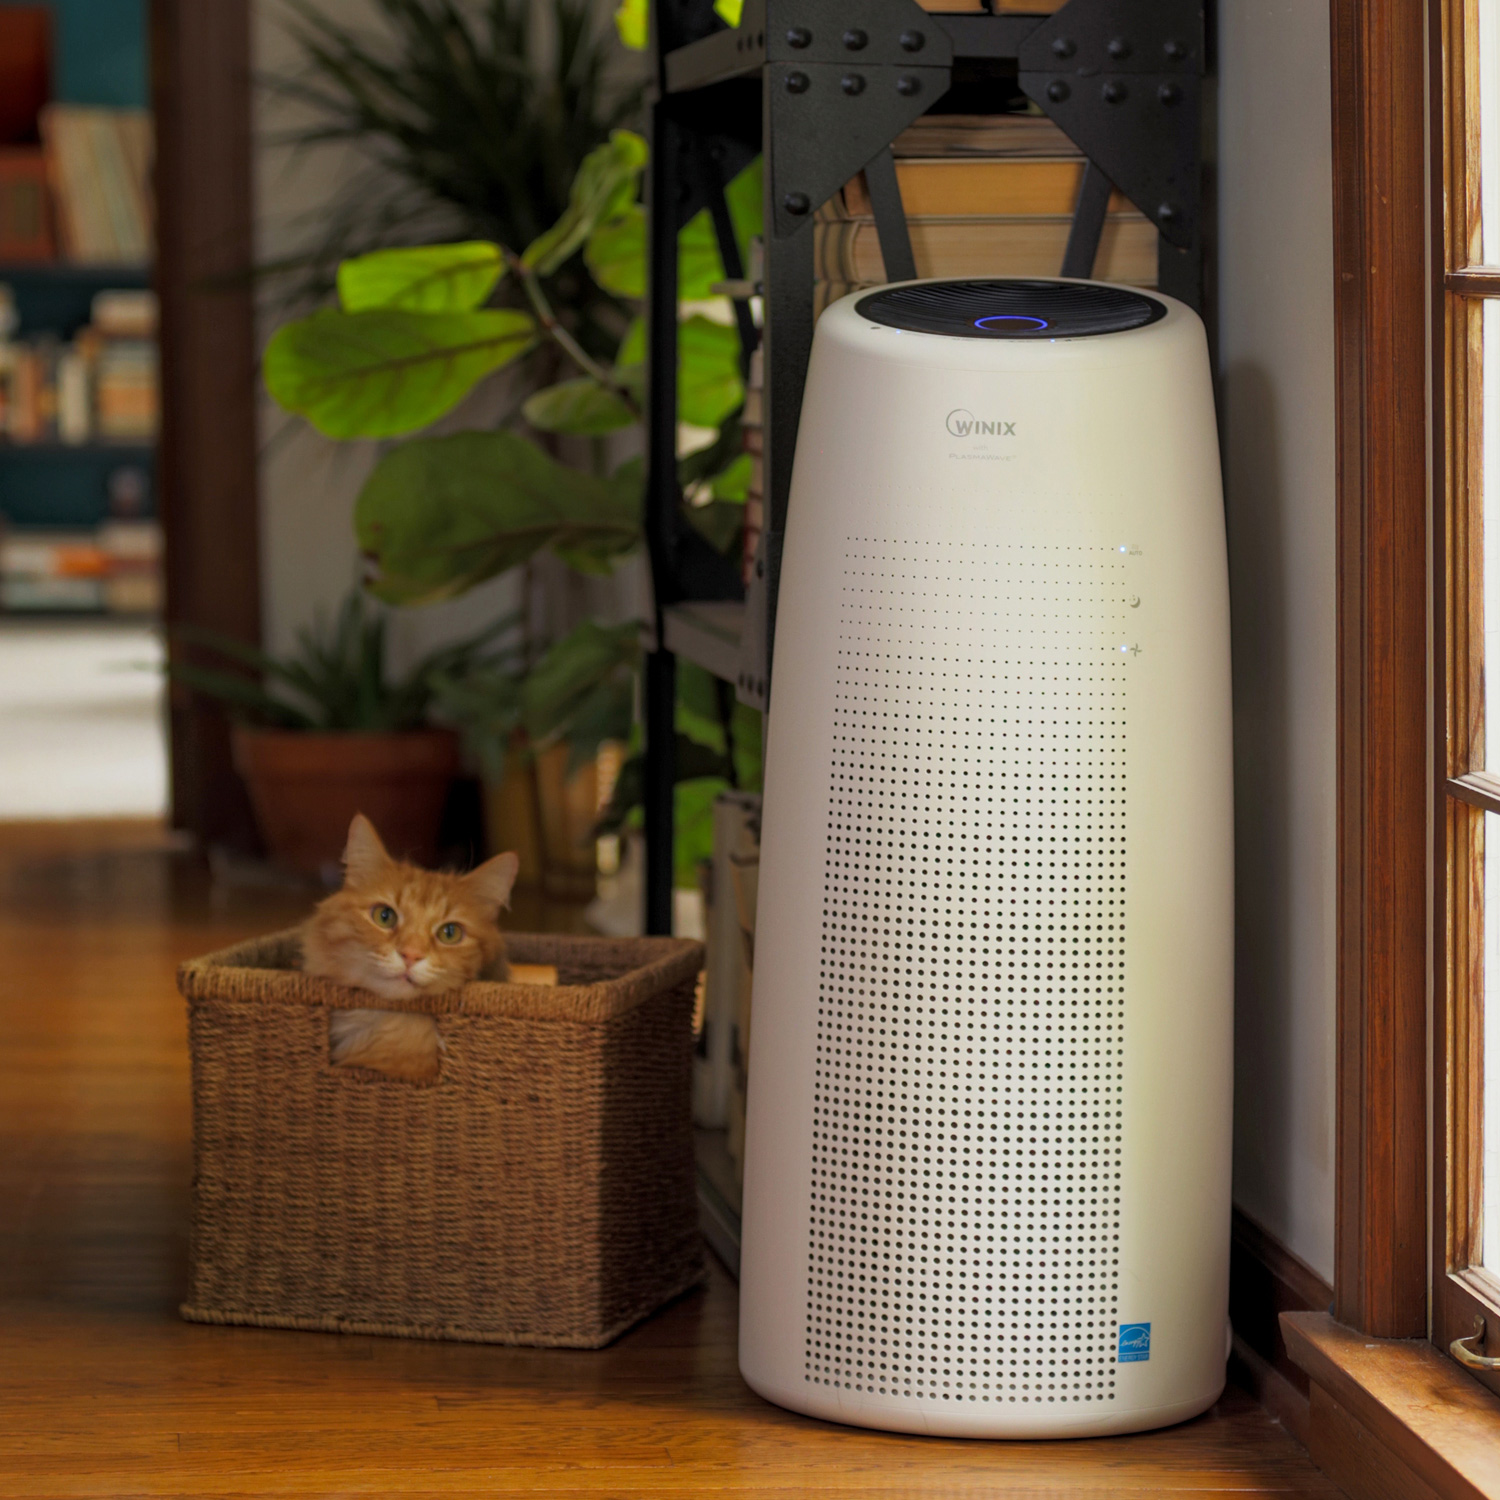 Winix Nk105 Wi Fi Tower Air Purifier Winix America Inc